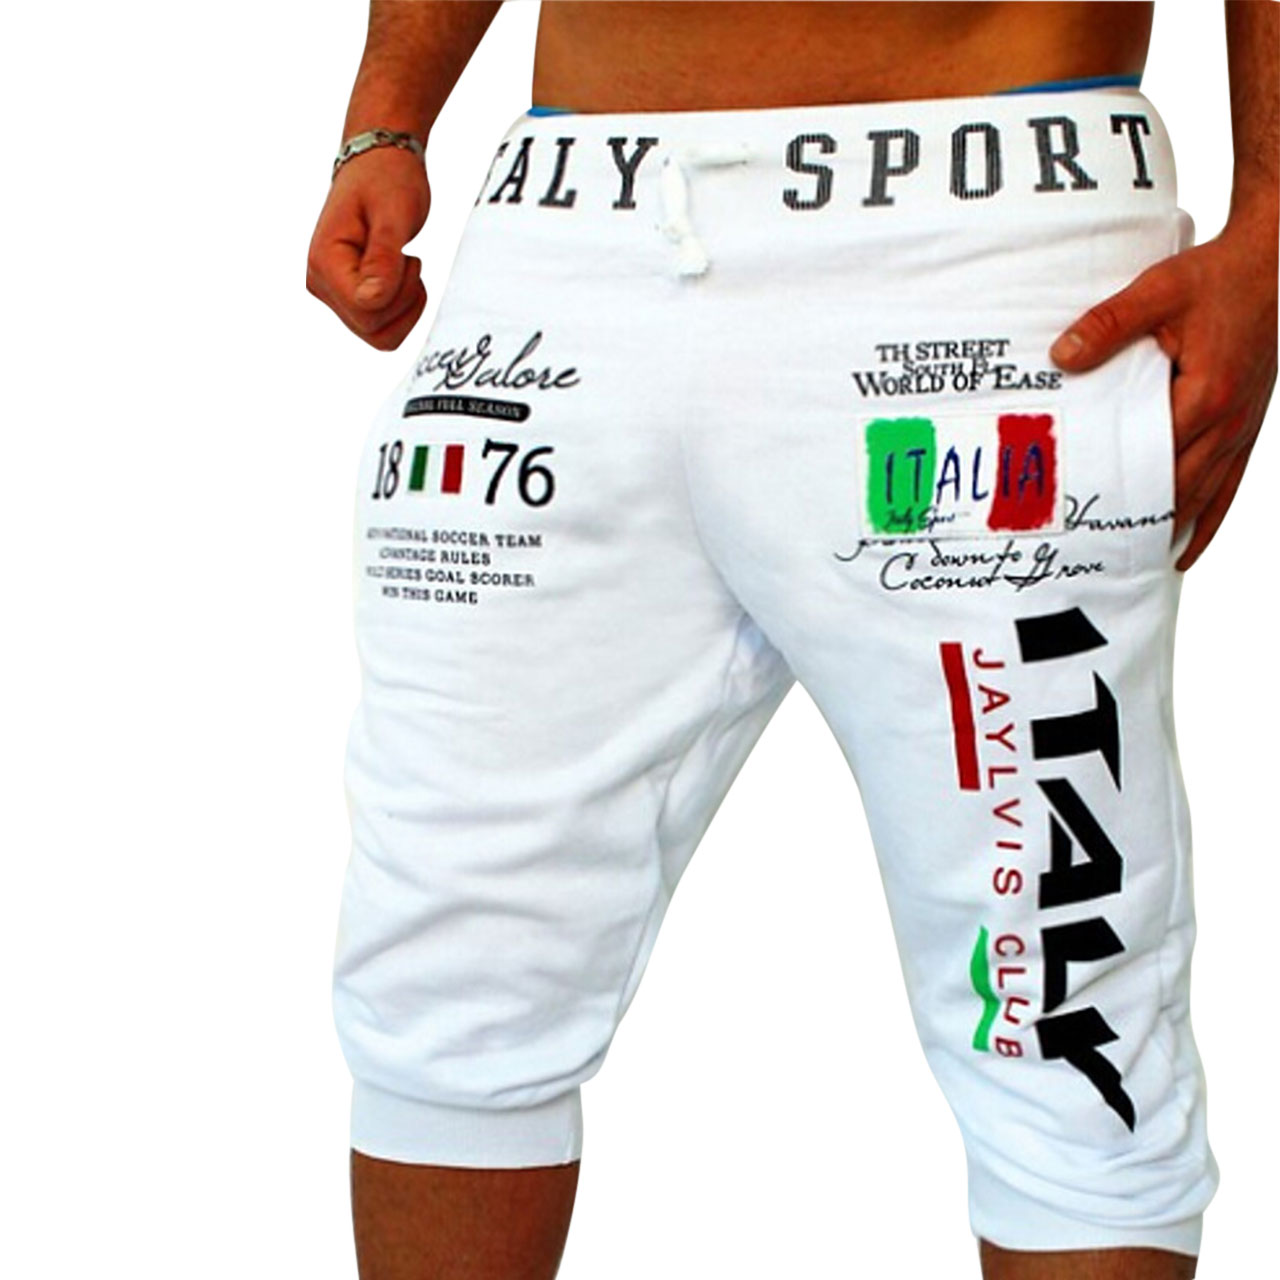 Active / Basic Sports Weekend Relaxed / wfh Sweatpant Shorts Men's Pants - Letter Print White